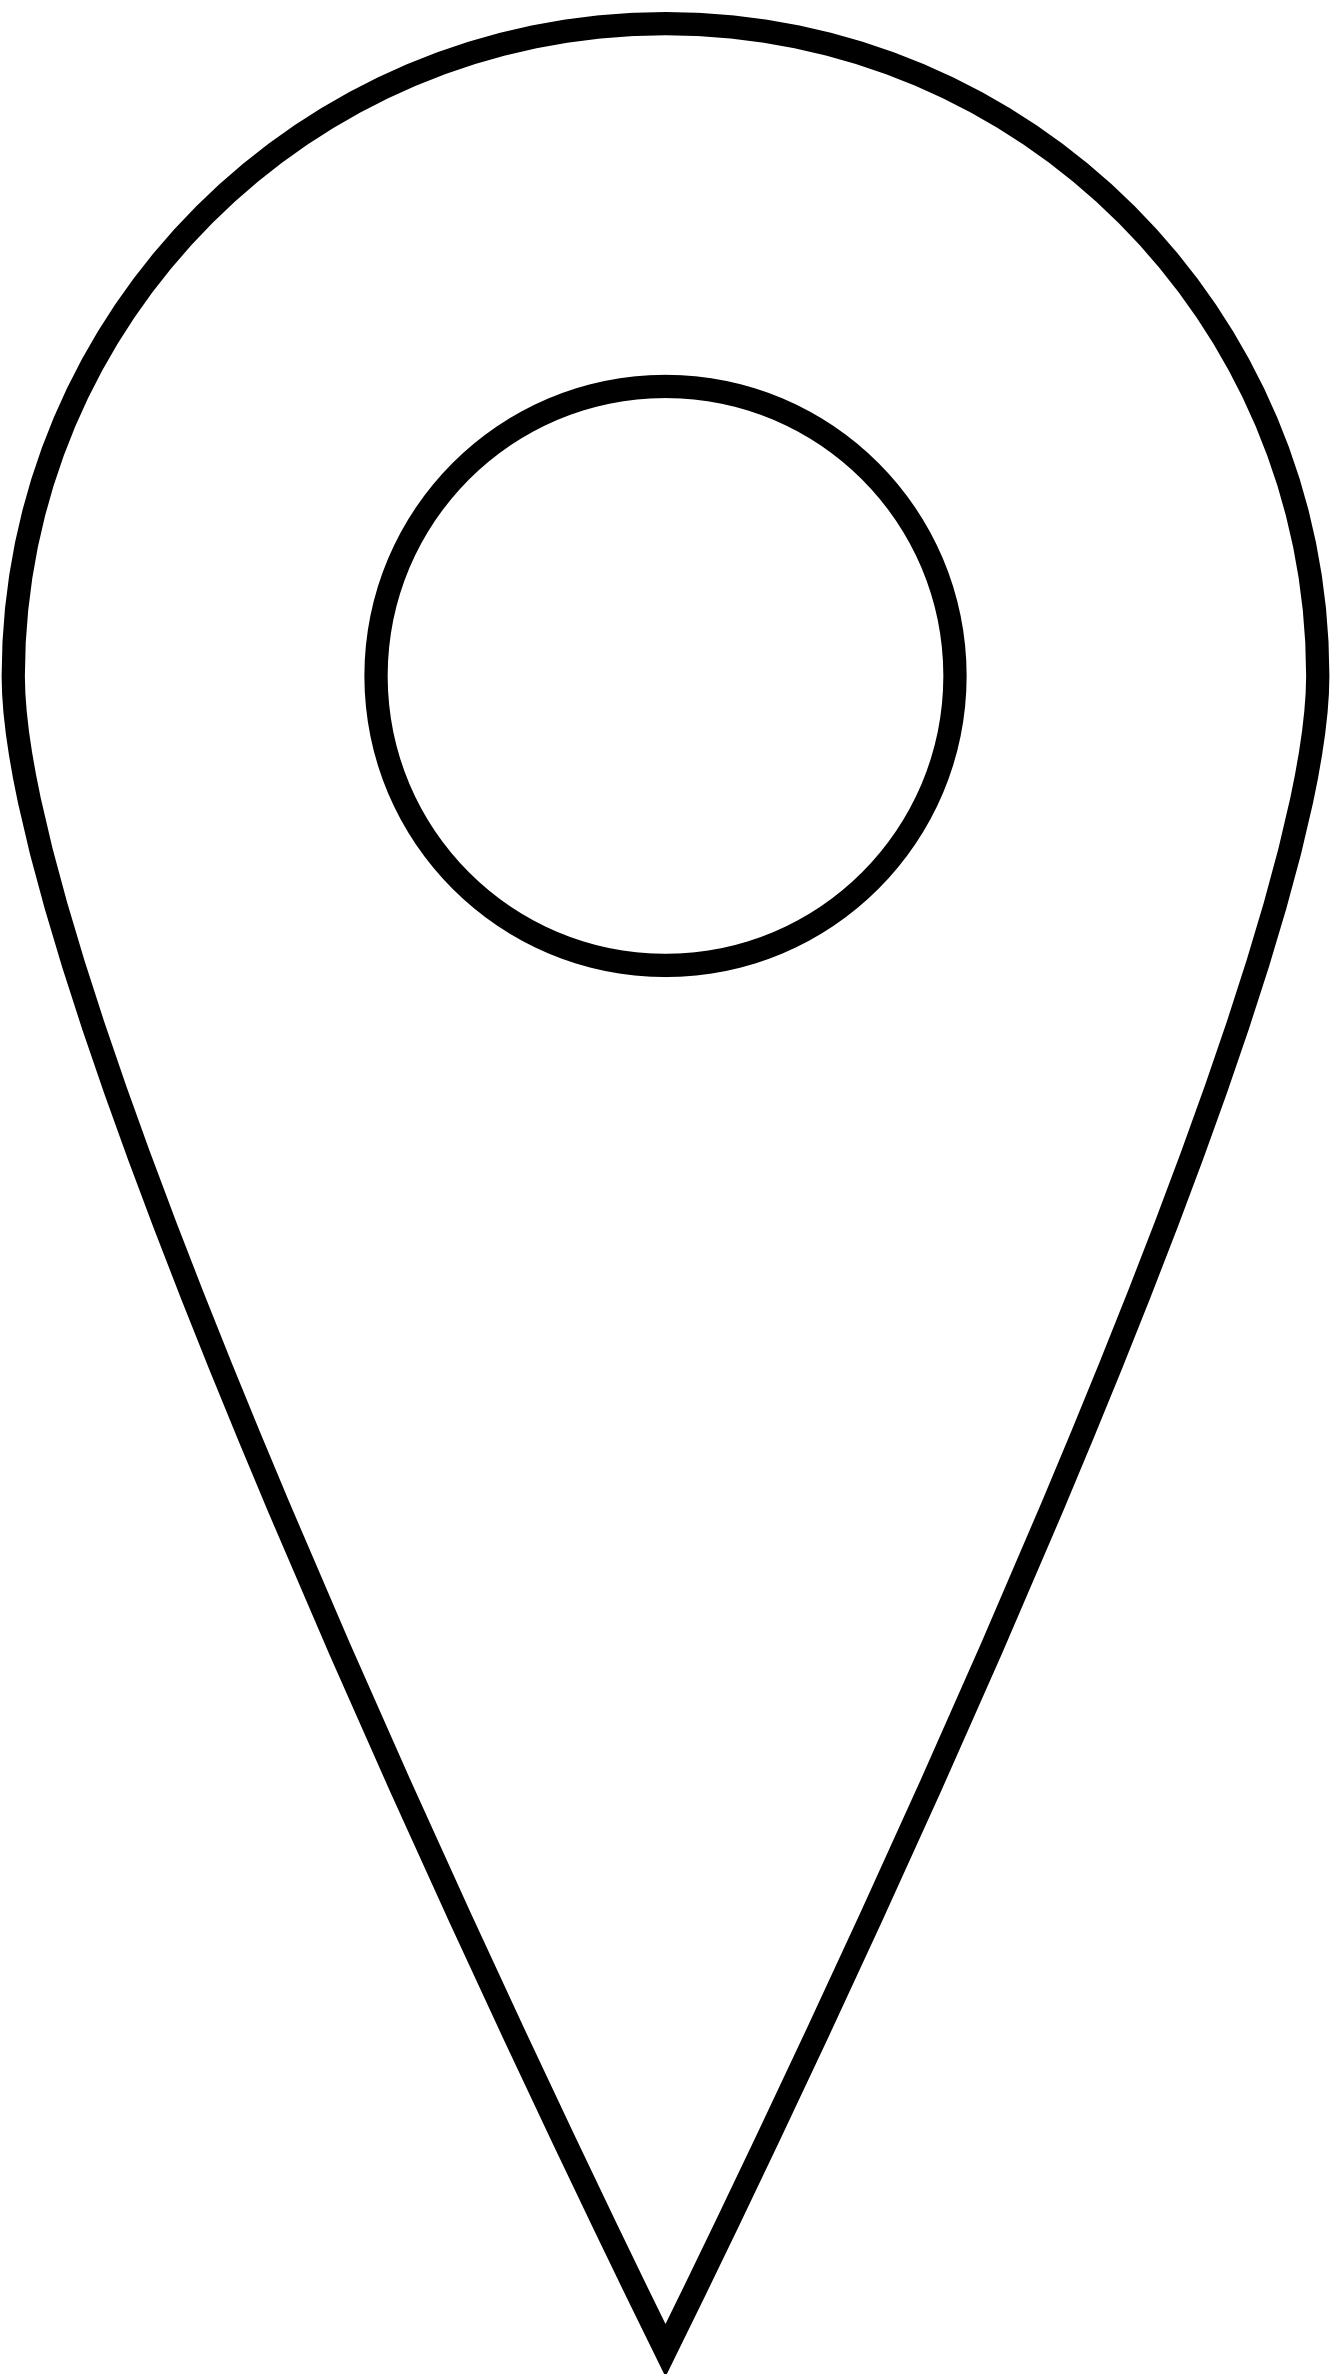 Location Icon Transparent Gallery